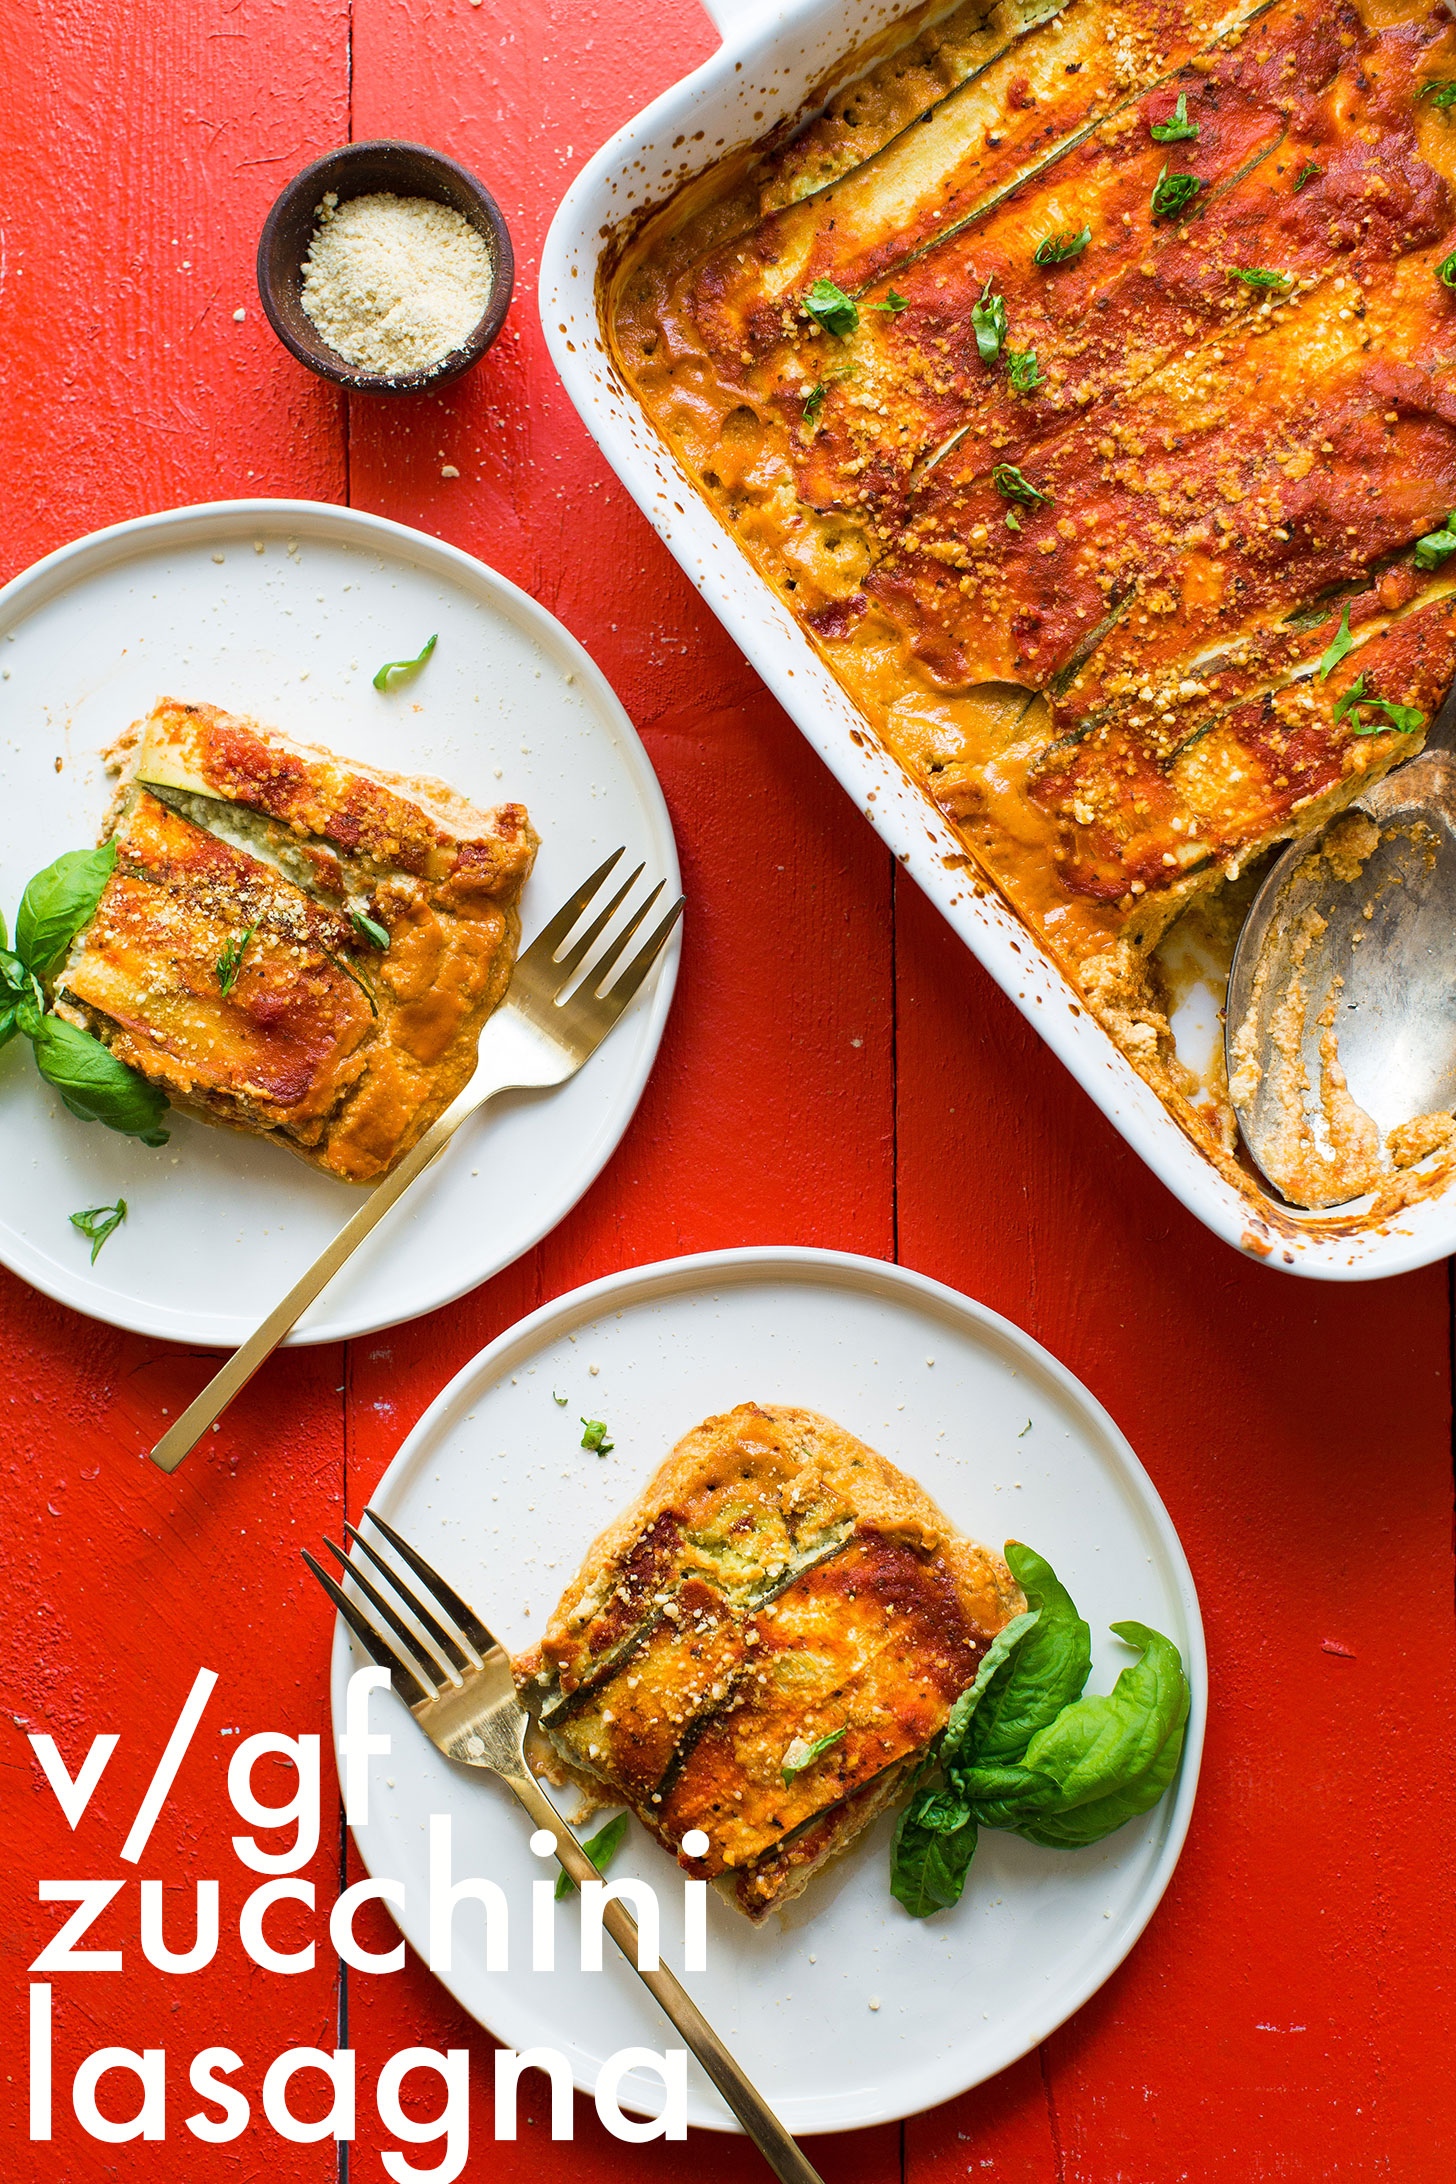 Vegan gluten free zucchini lasagna minimalist baker recipes two servings of gluten free vegan zucchini lasagna on dinner plates forumfinder